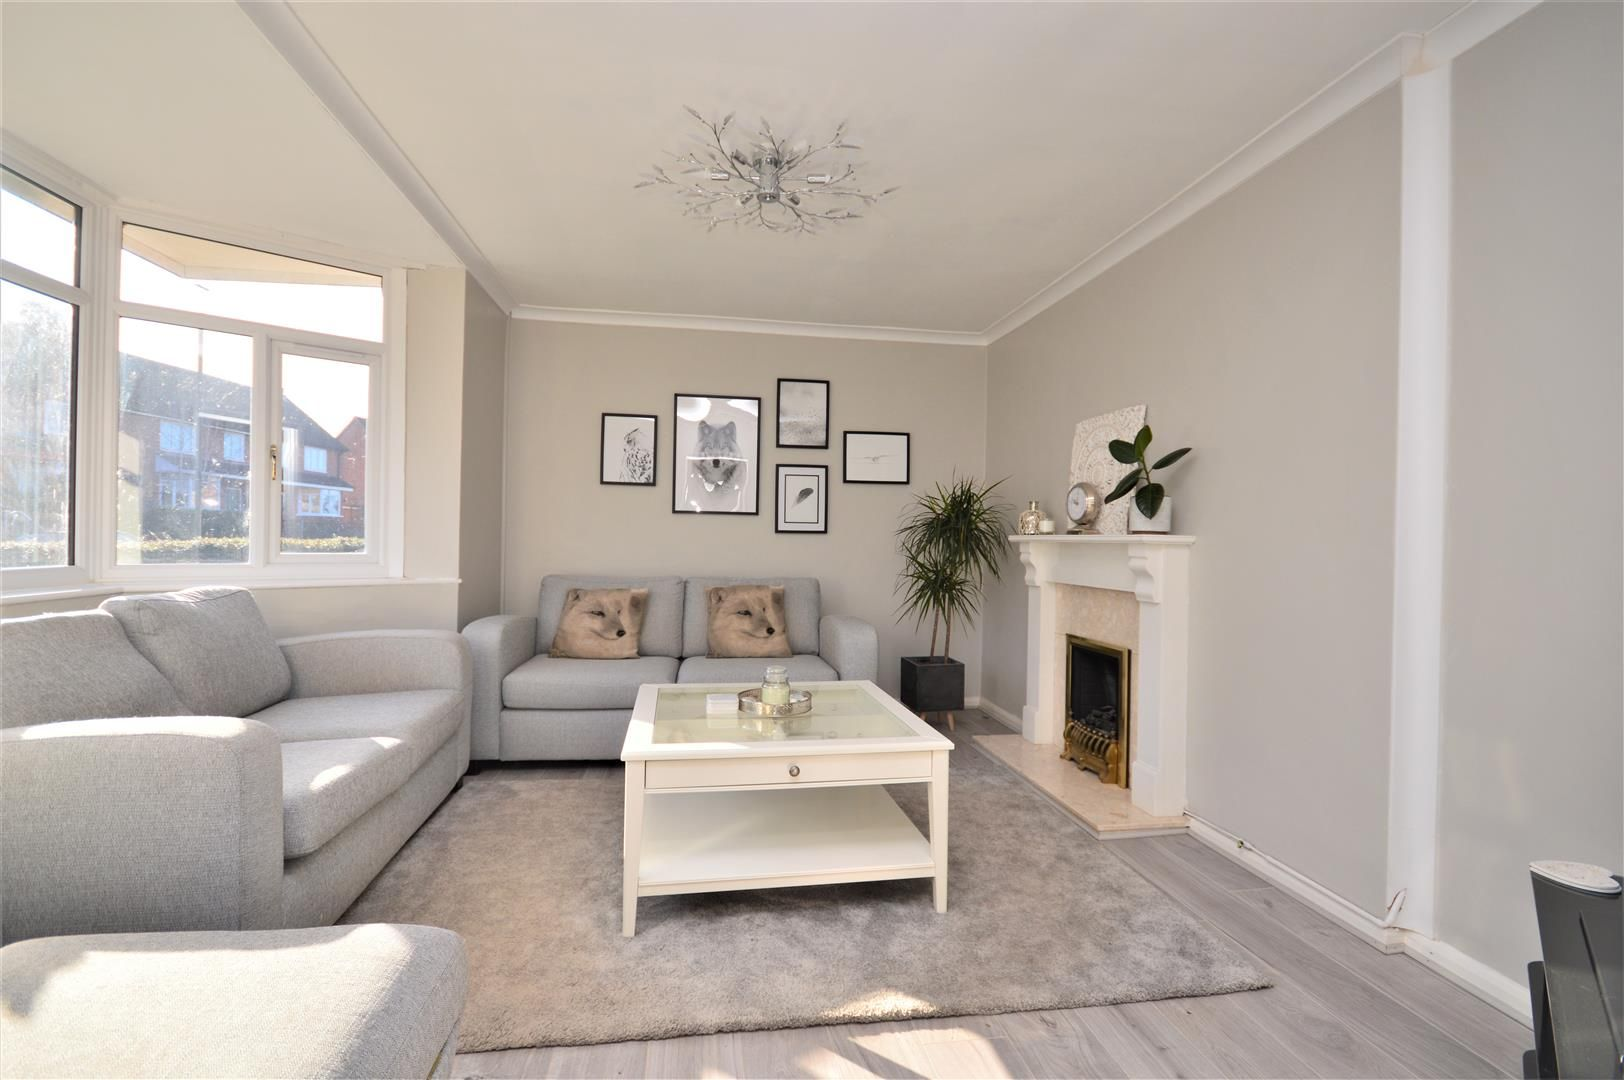 3 bed end-of-terrace for sale in Hereford  - Property Image 3